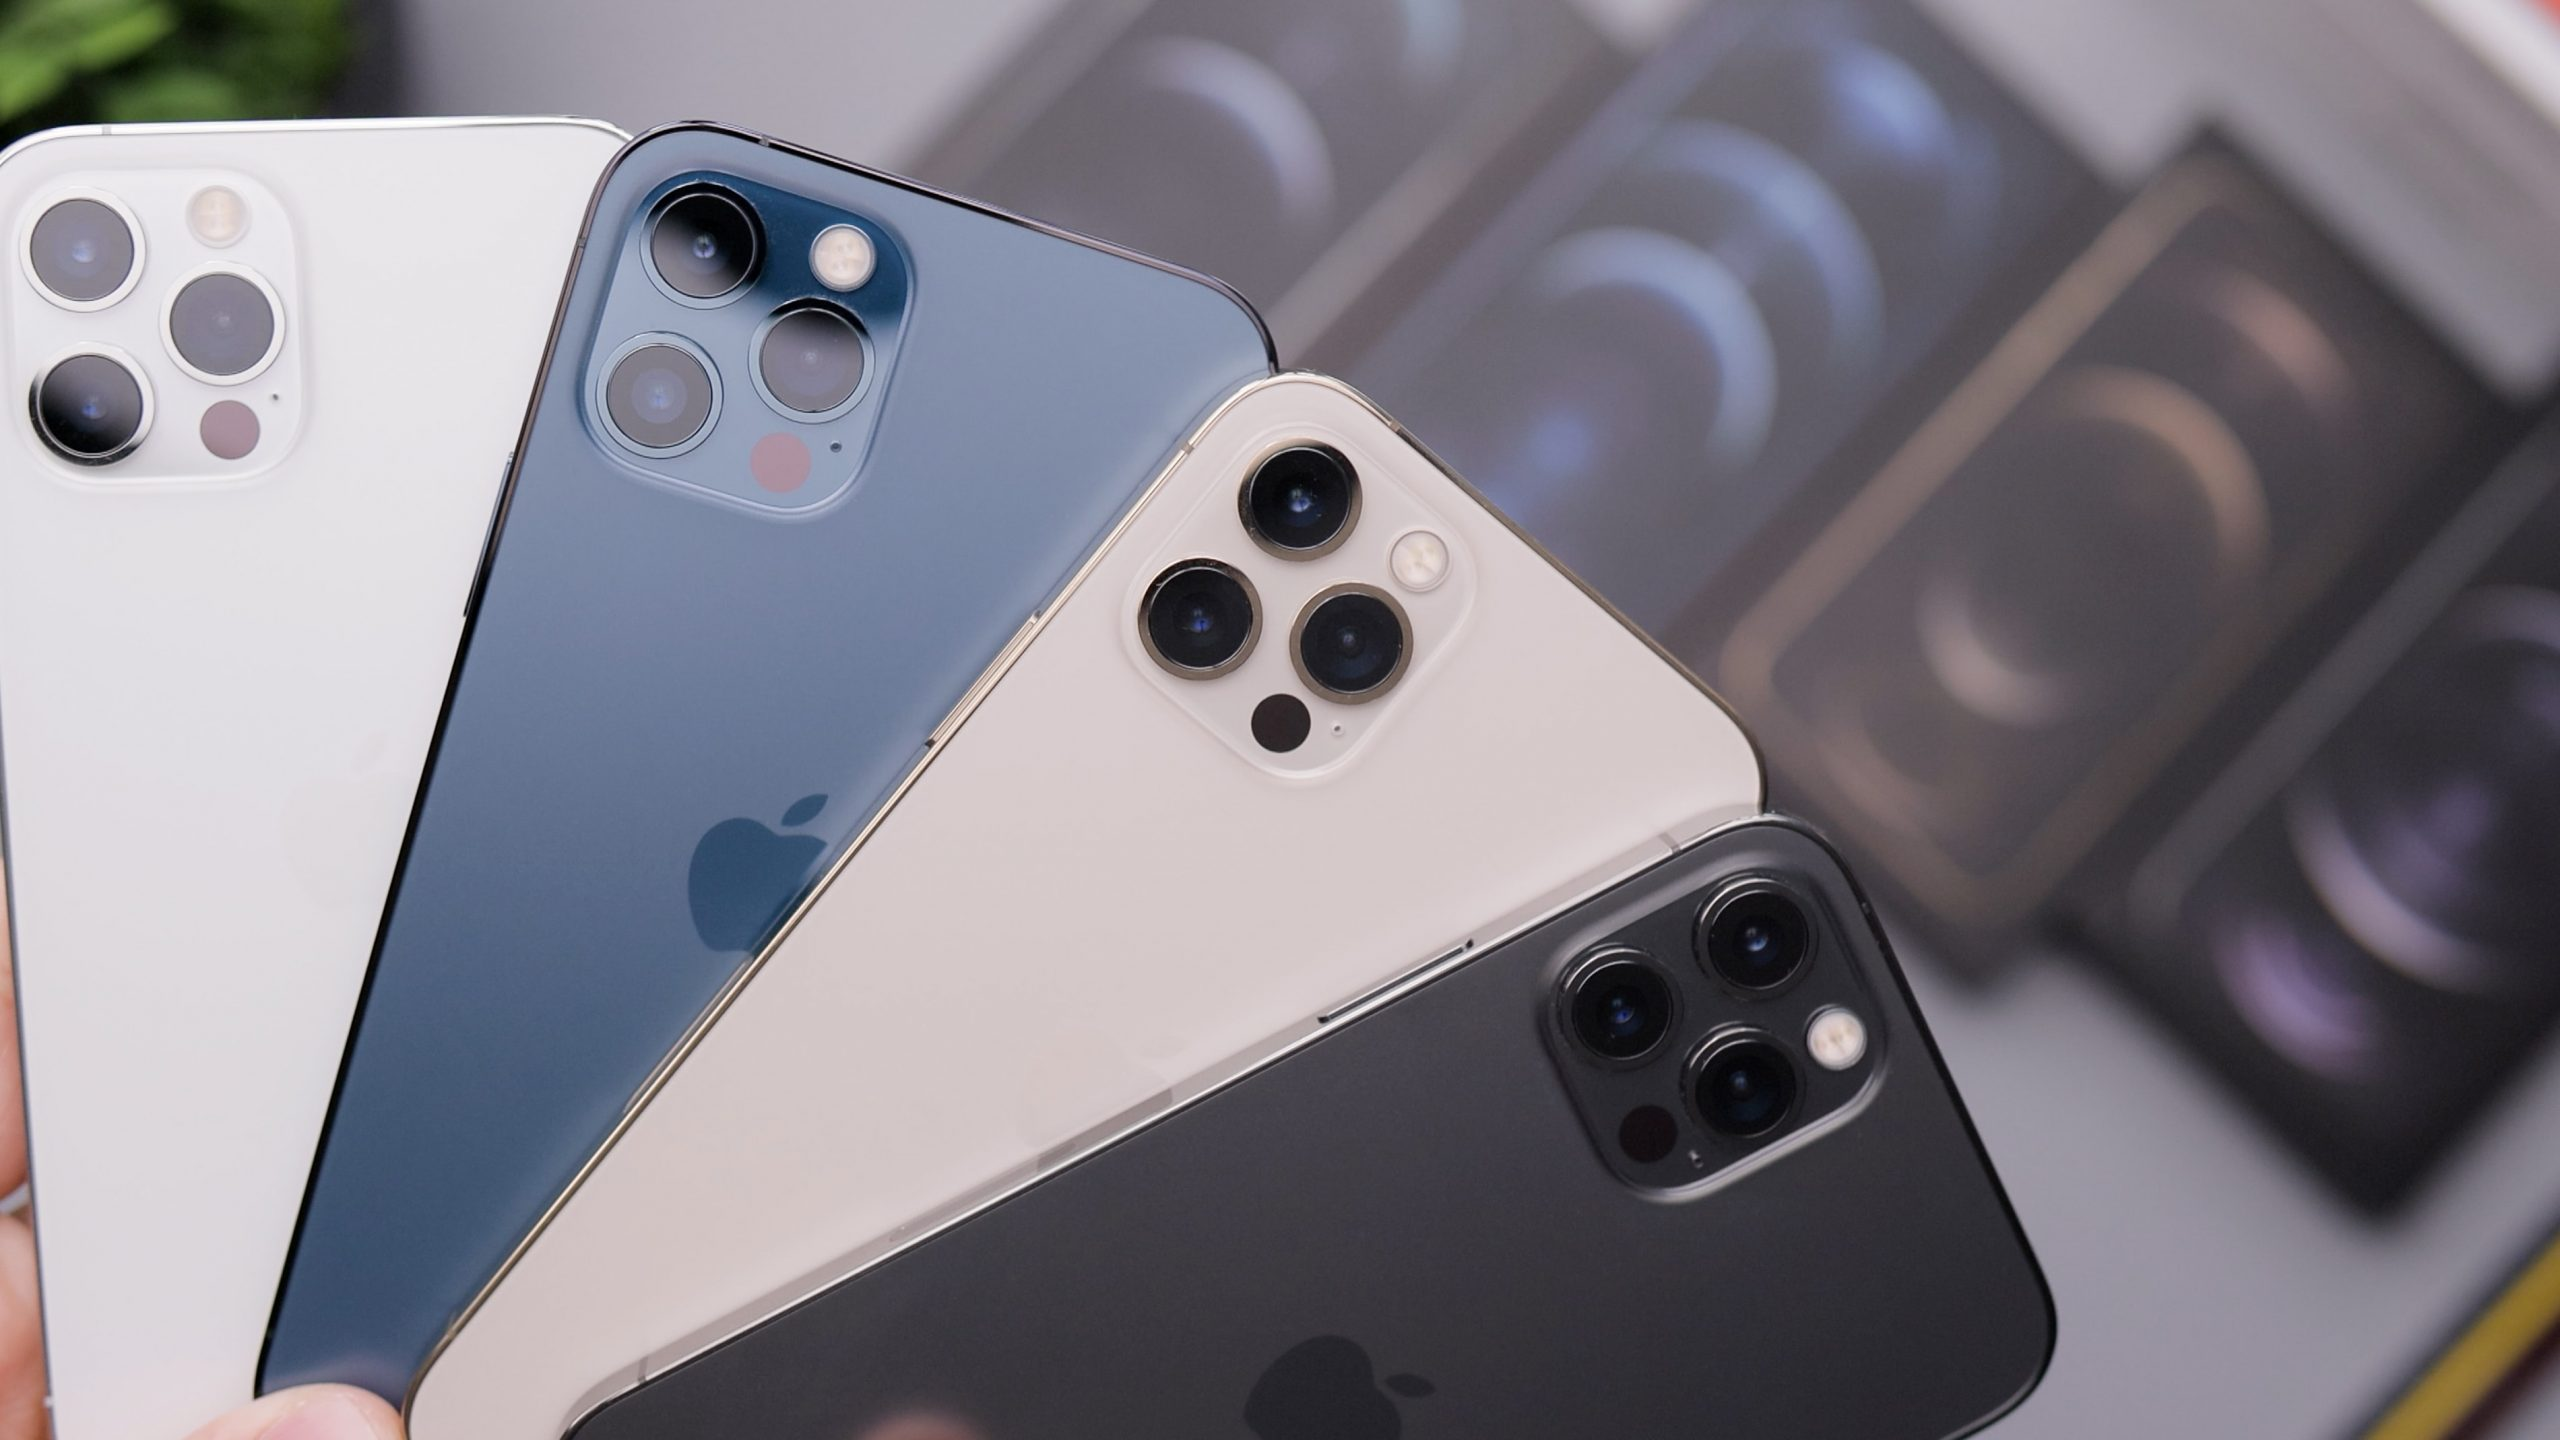 Leak suggests that the next iPhone will feature an always-on display